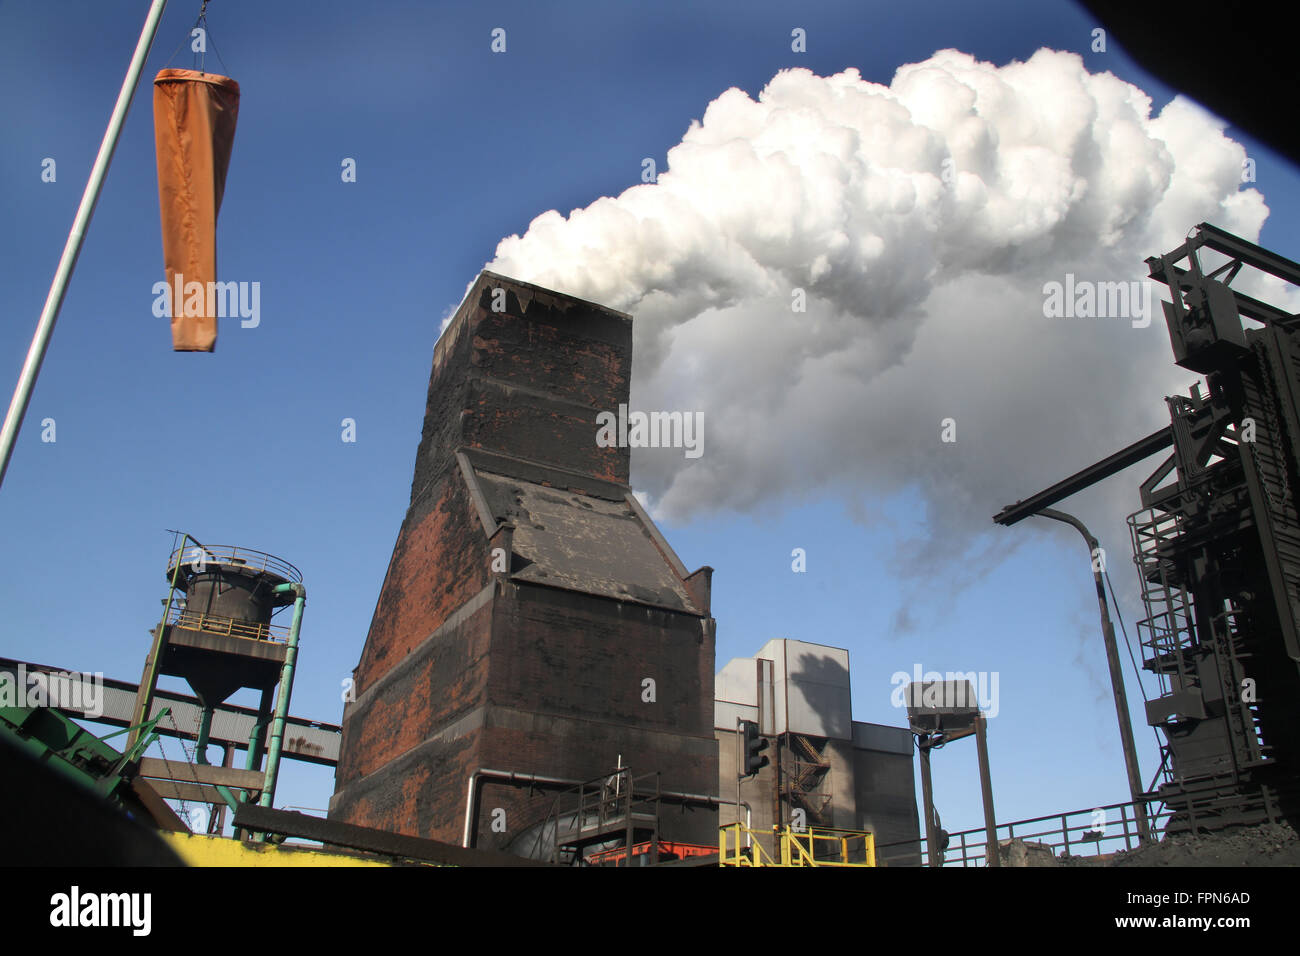 Steam from coke oven quenching tower. - Stock Image